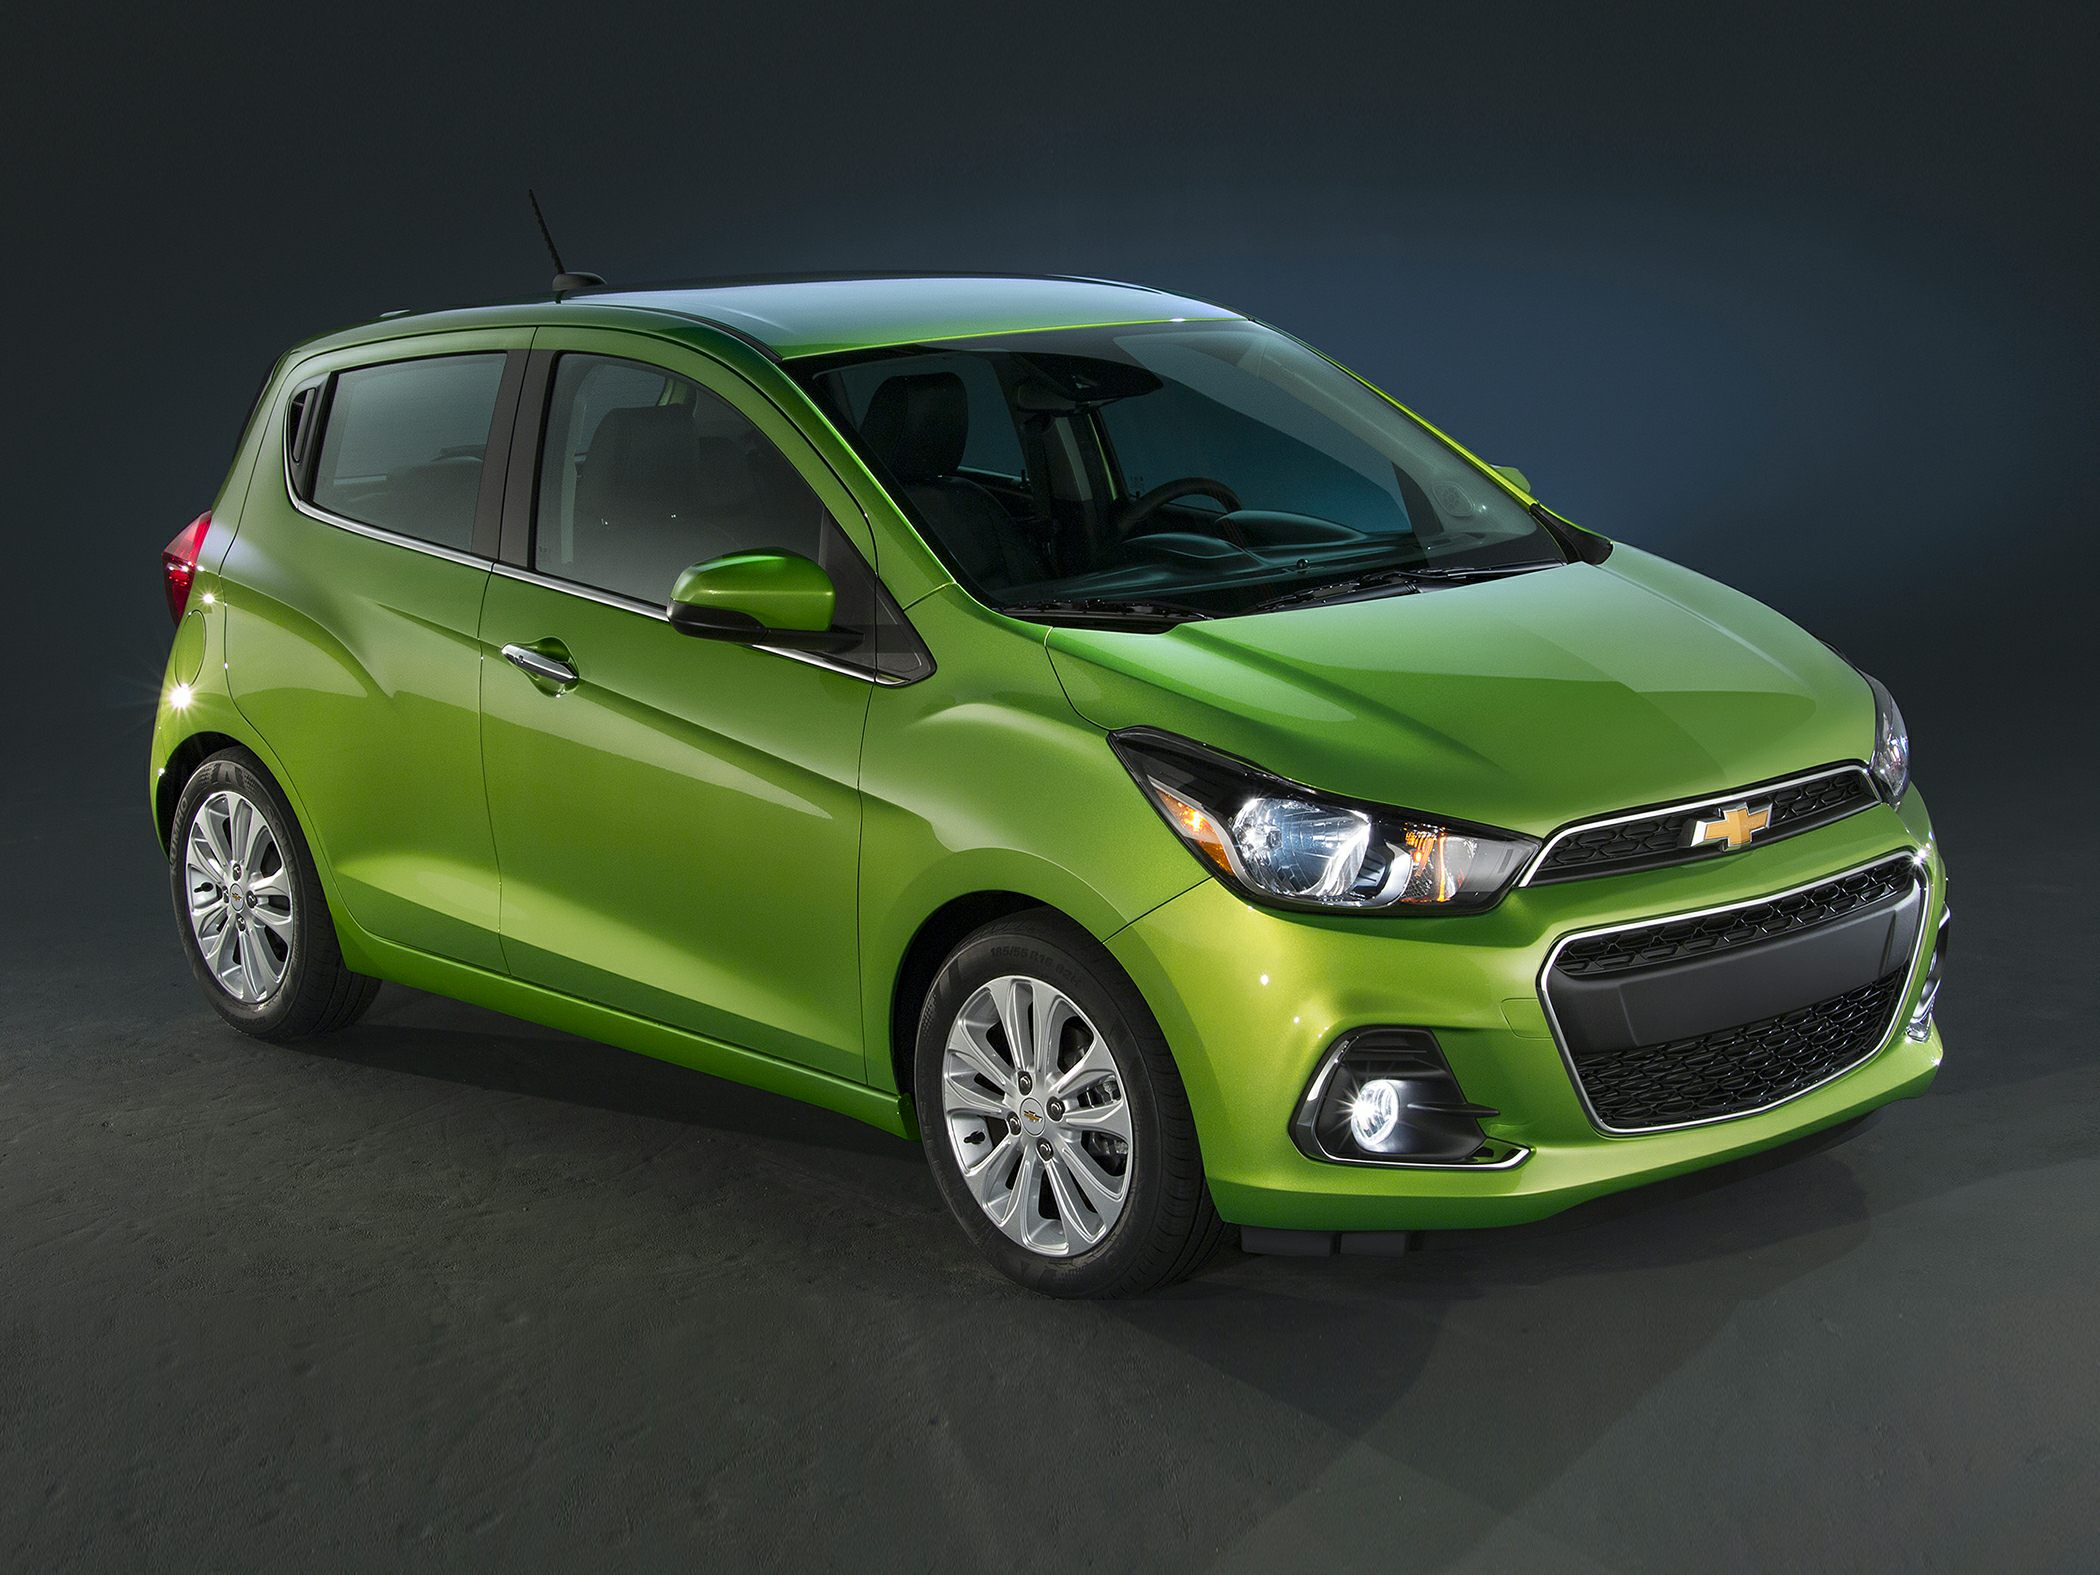 2018 Chevrolet Spark For Sale In Oshawa Ontario Motor Sales 4 2 L6 Engine Diagram Ls Manual